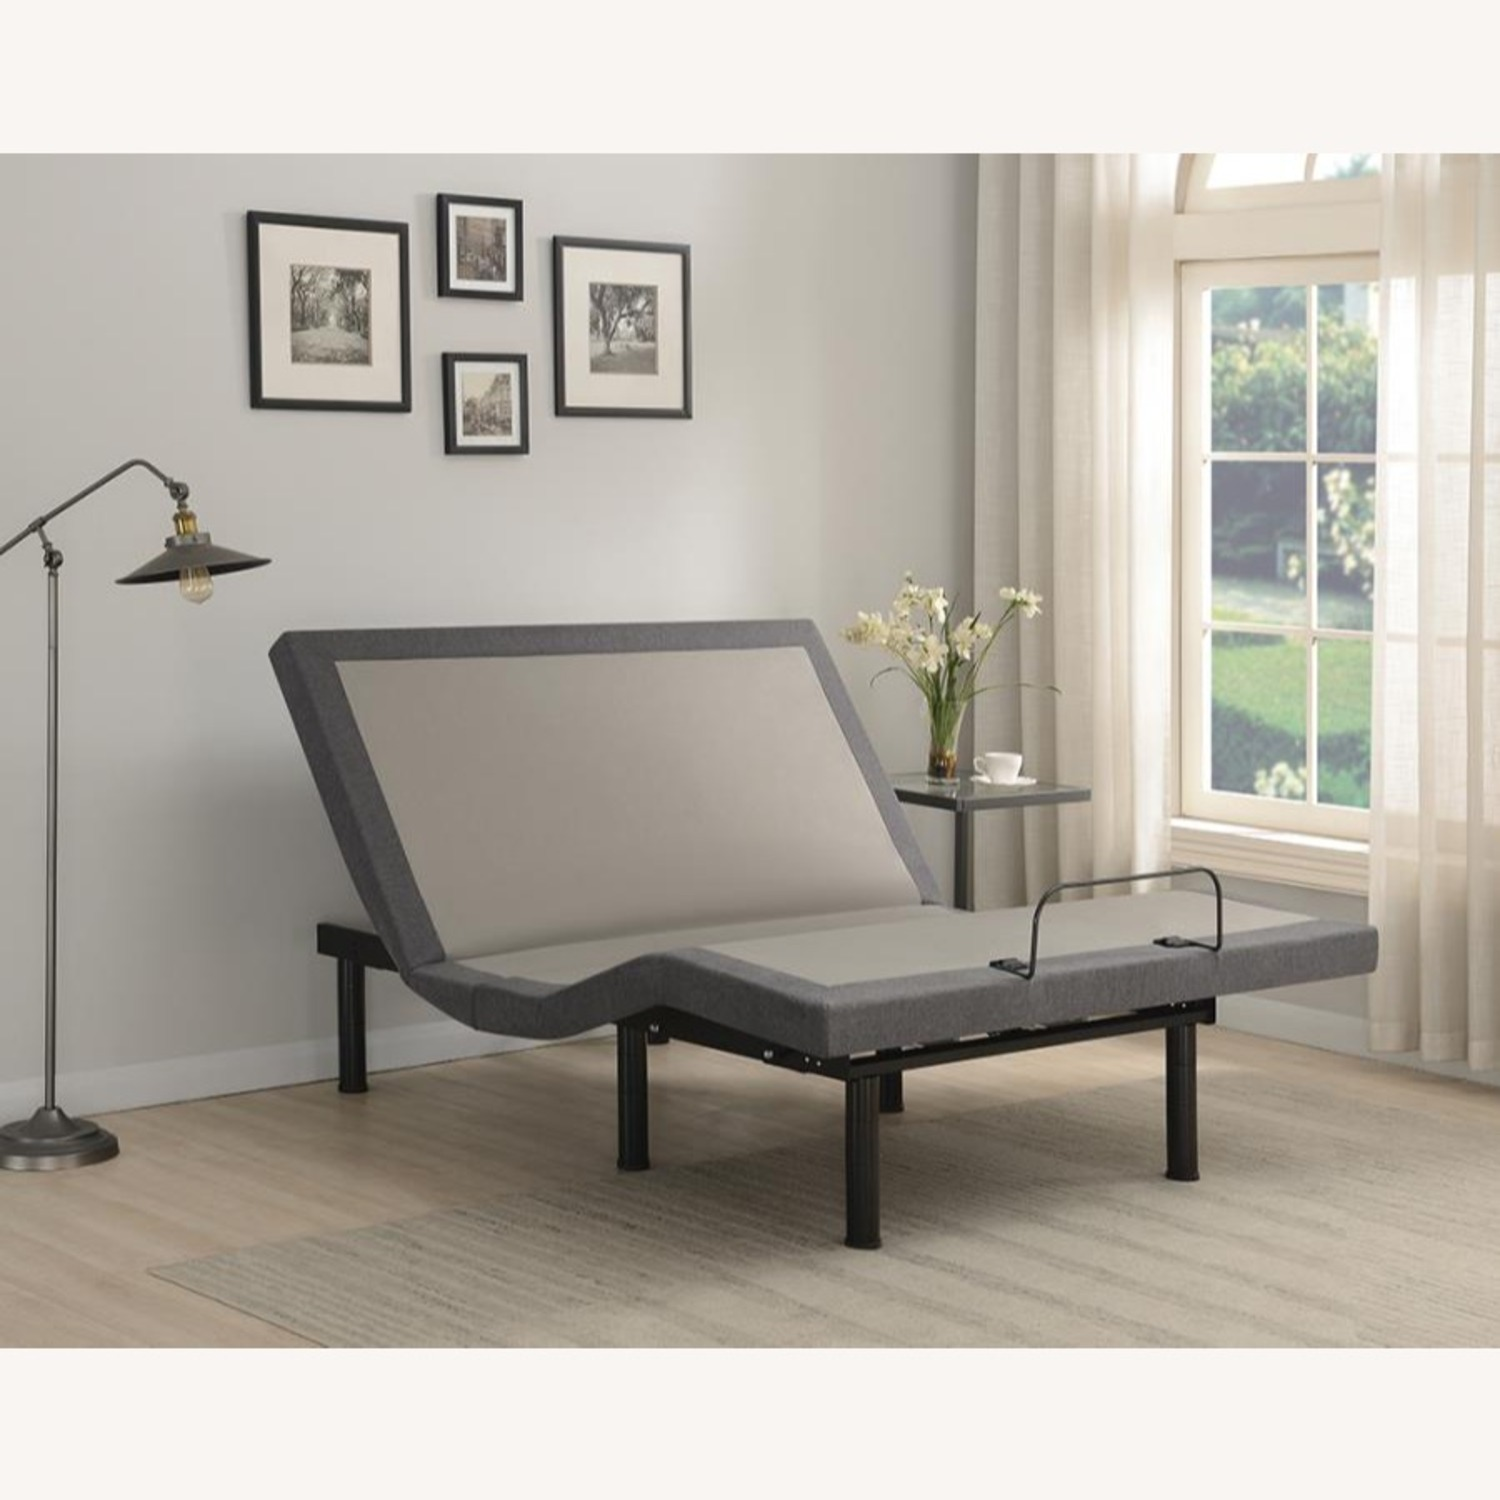 Twin XL Adjustable Bed Base In Grey Fabric Finish - image-13